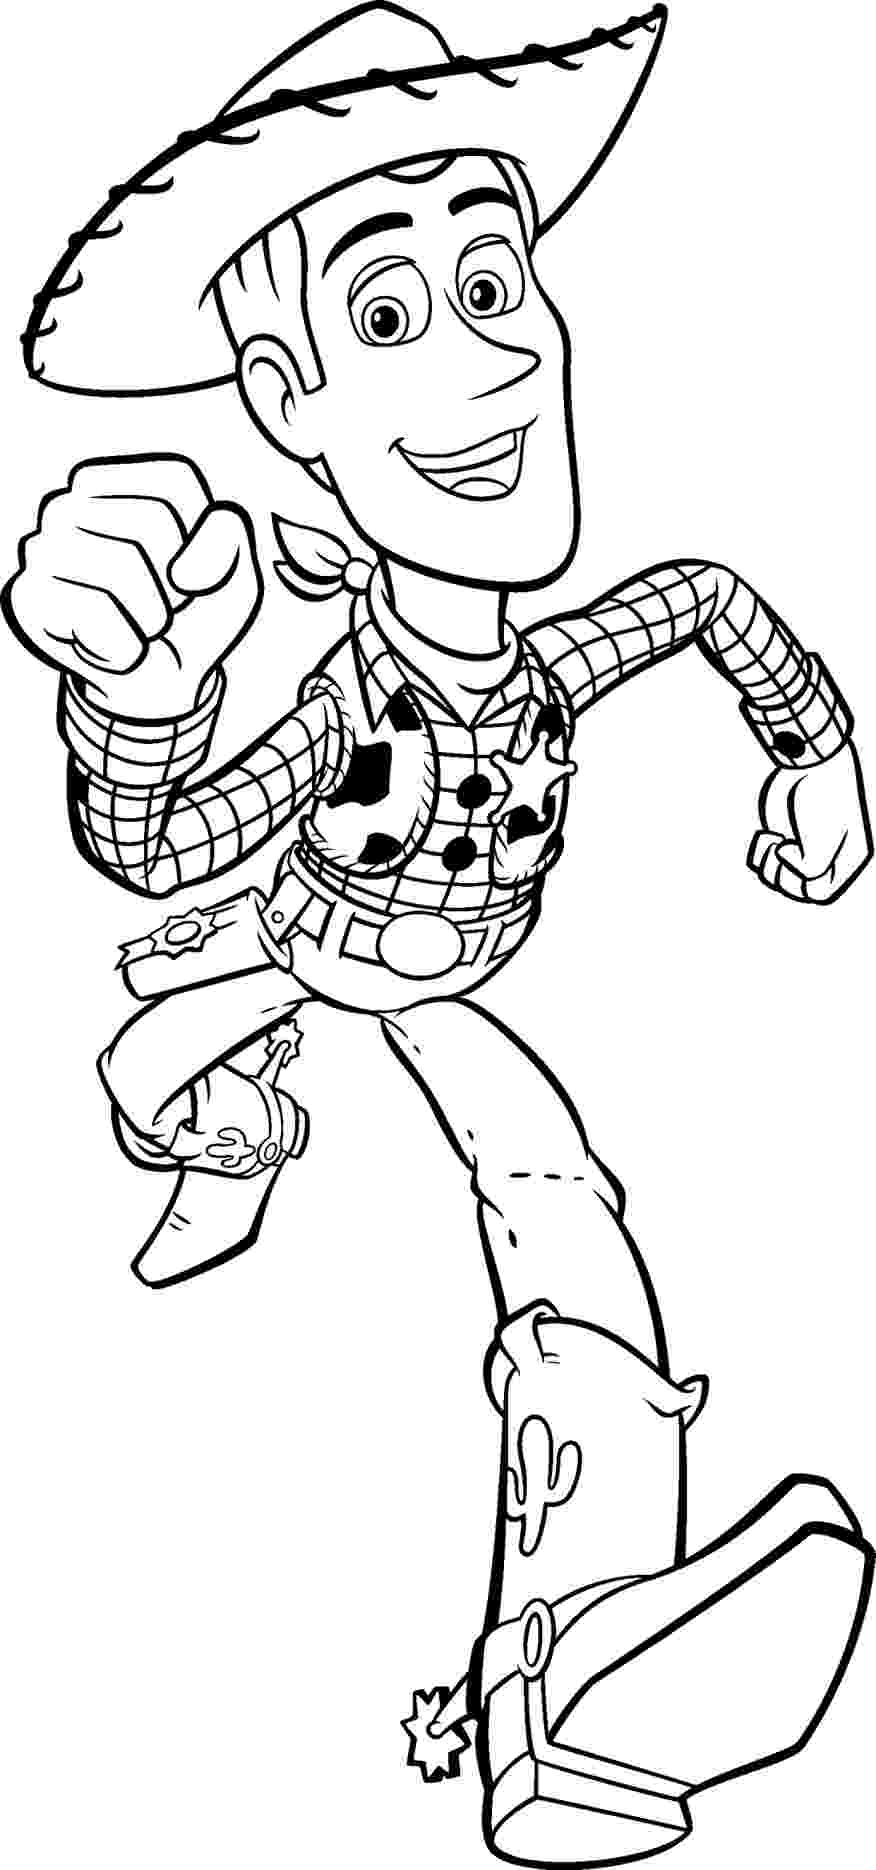 toy store coloring pages free printable toy story coloring pages for kids store coloring toy pages